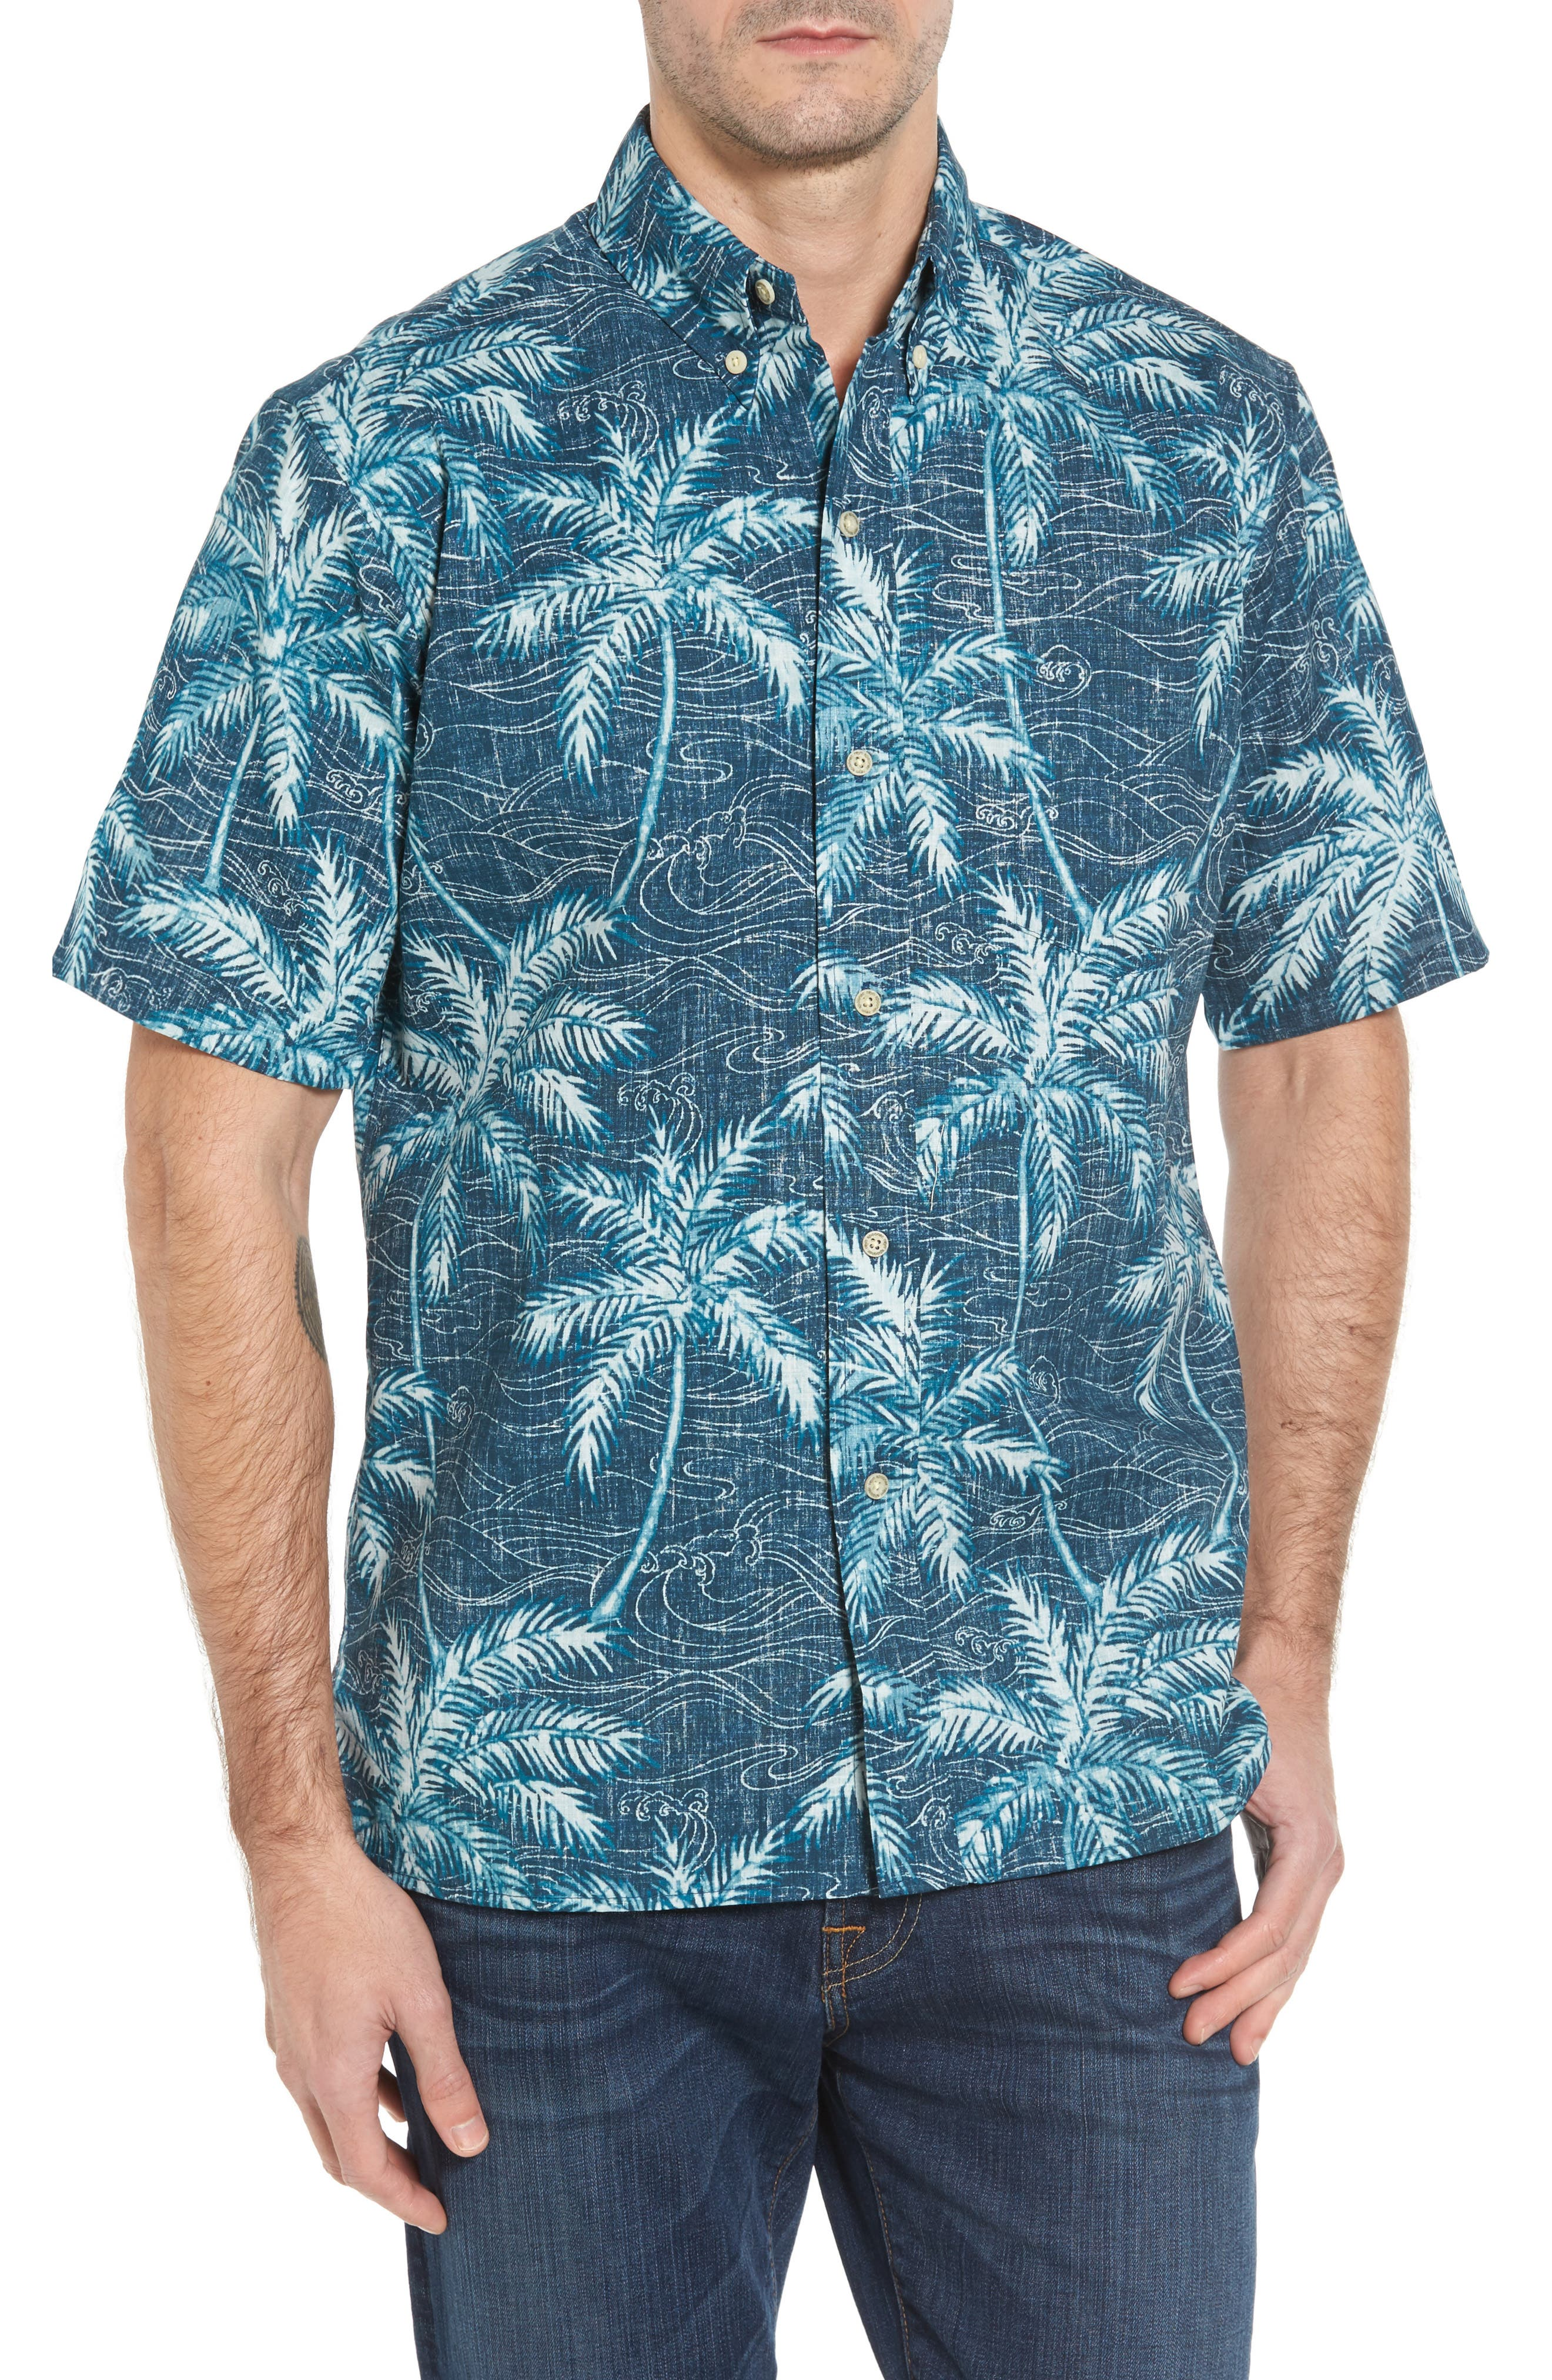 Alternate Image 1 Selected - Reyn Spooner Palm Seas Classic Fit Sport Shirt